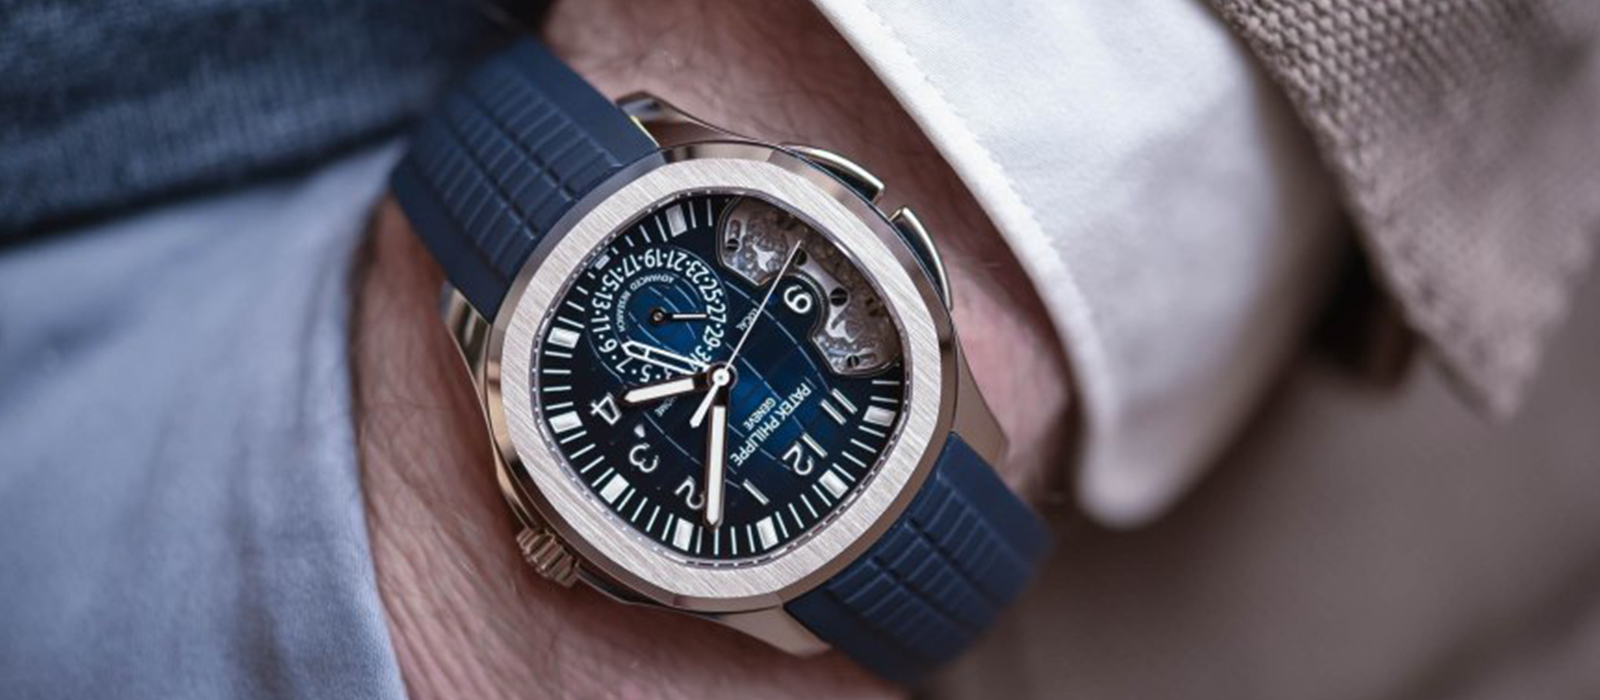 You never actually own a Patek Philippe.